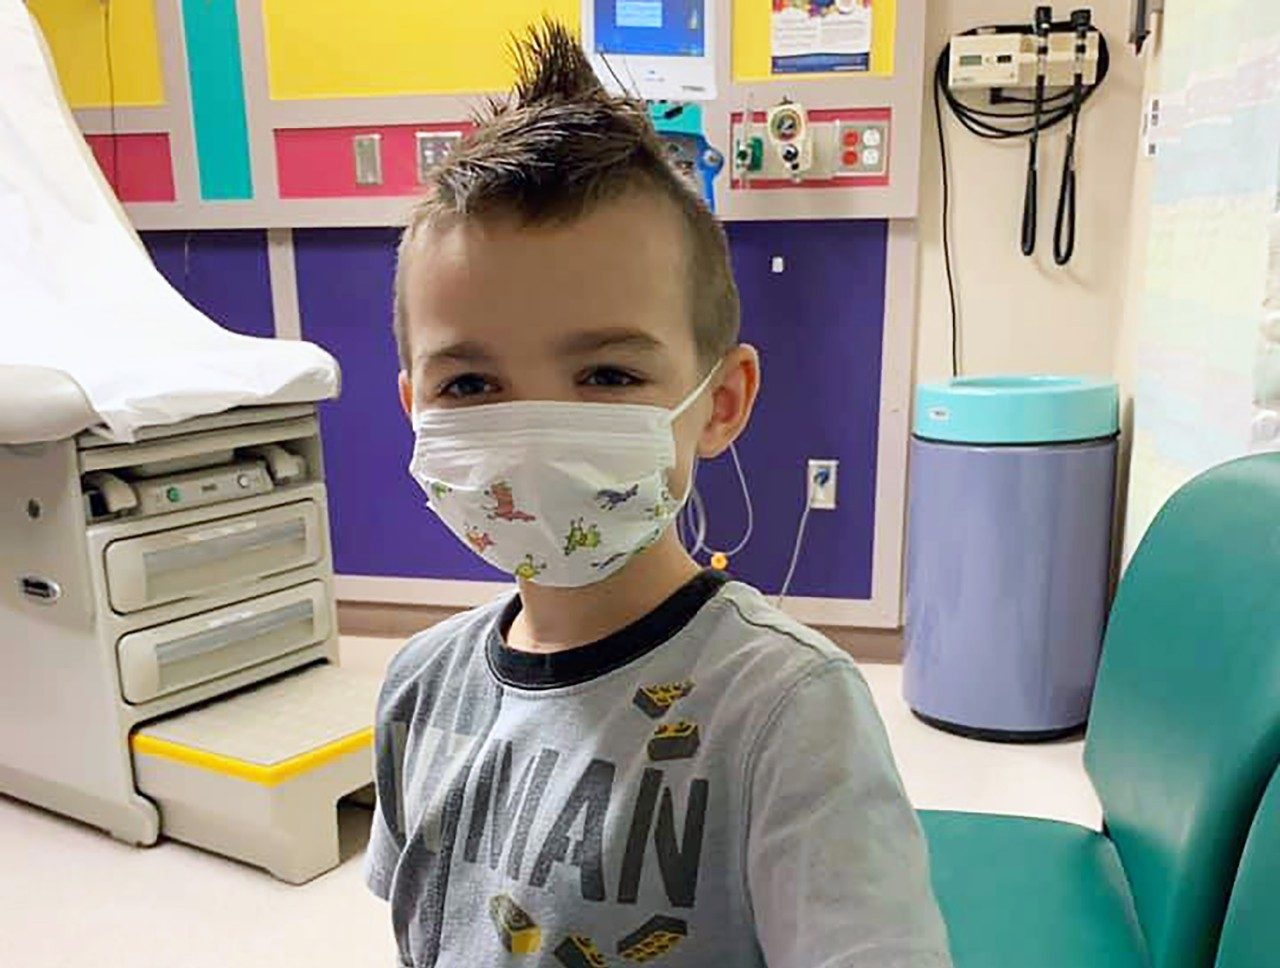 Embryonal rhabdomyosarcoma survivor Sawyer Hack, pictured in a face mask